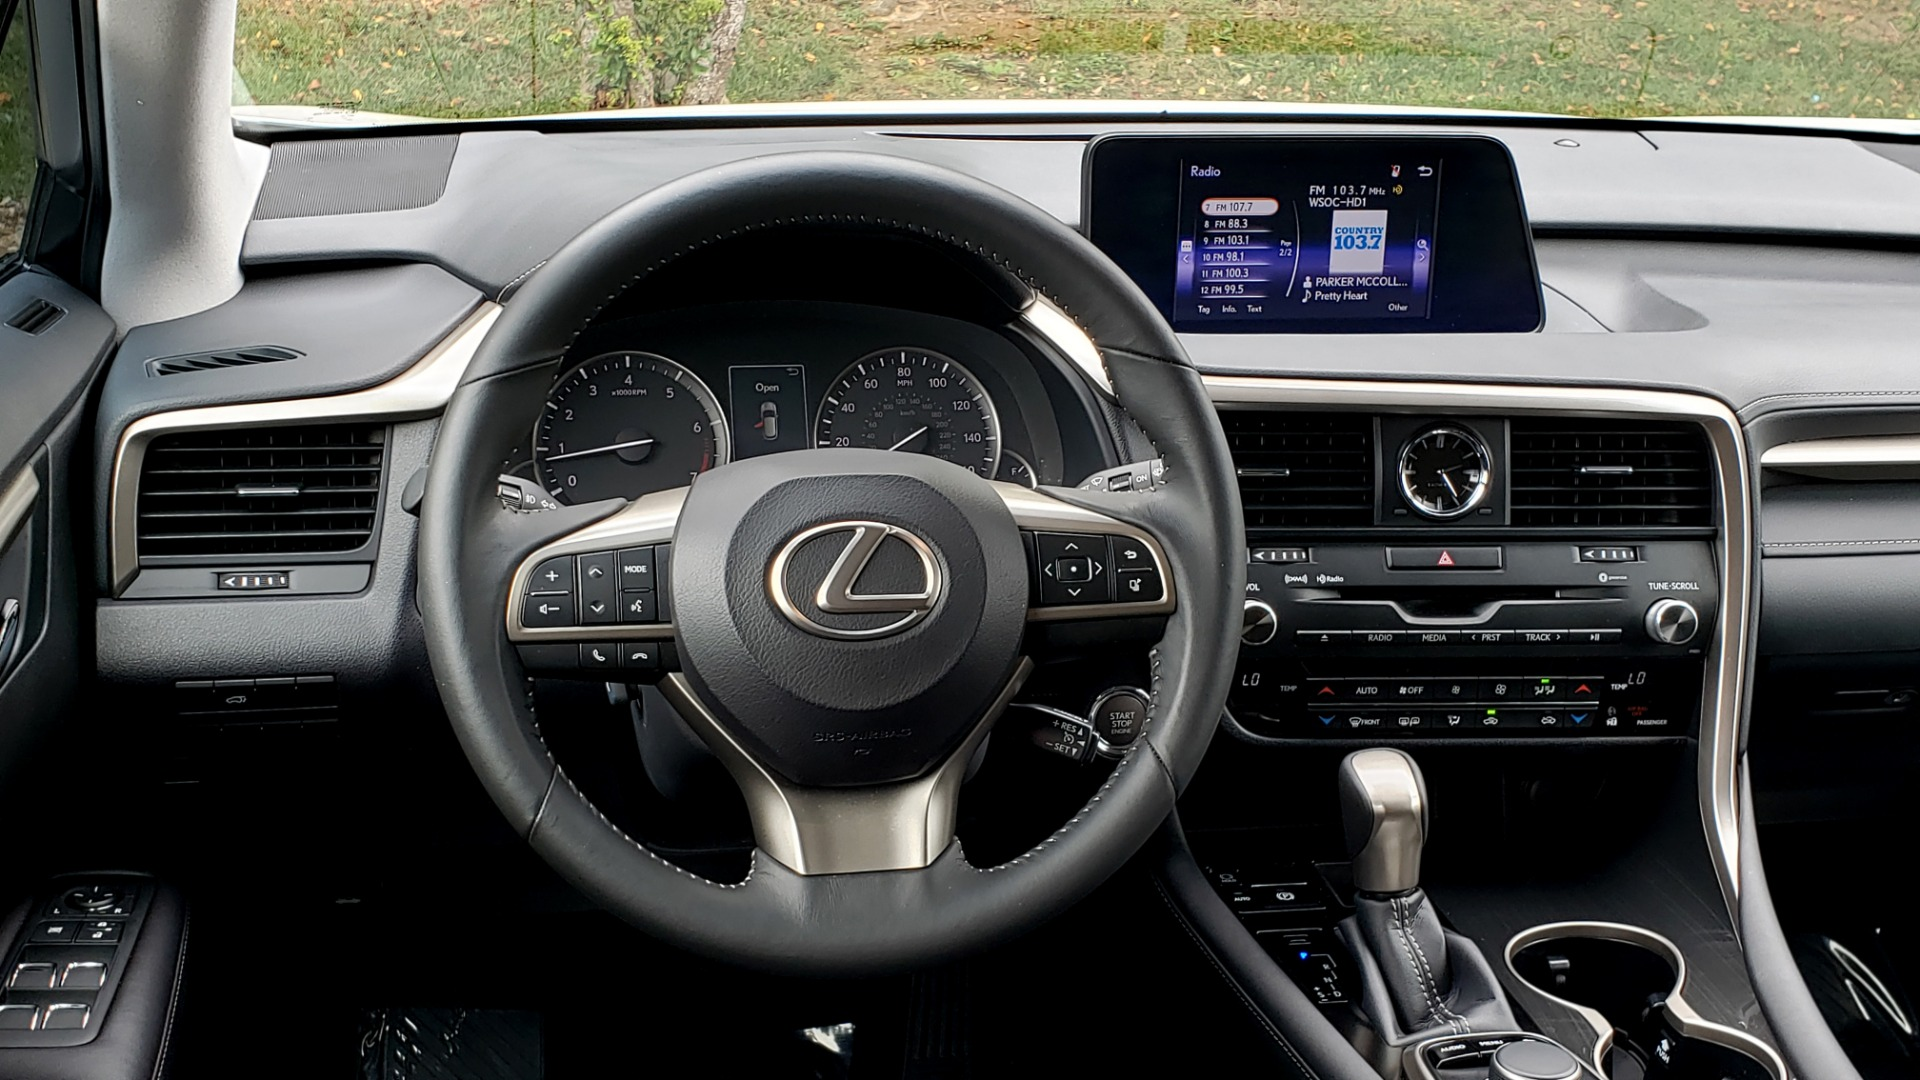 Used 2016 Lexus RX 350 FWD / 4-DR / 3.5L V6 / 8-SPD AUTO / LEATHER / REARVIEW for sale $29,795 at Formula Imports in Charlotte NC 28227 40